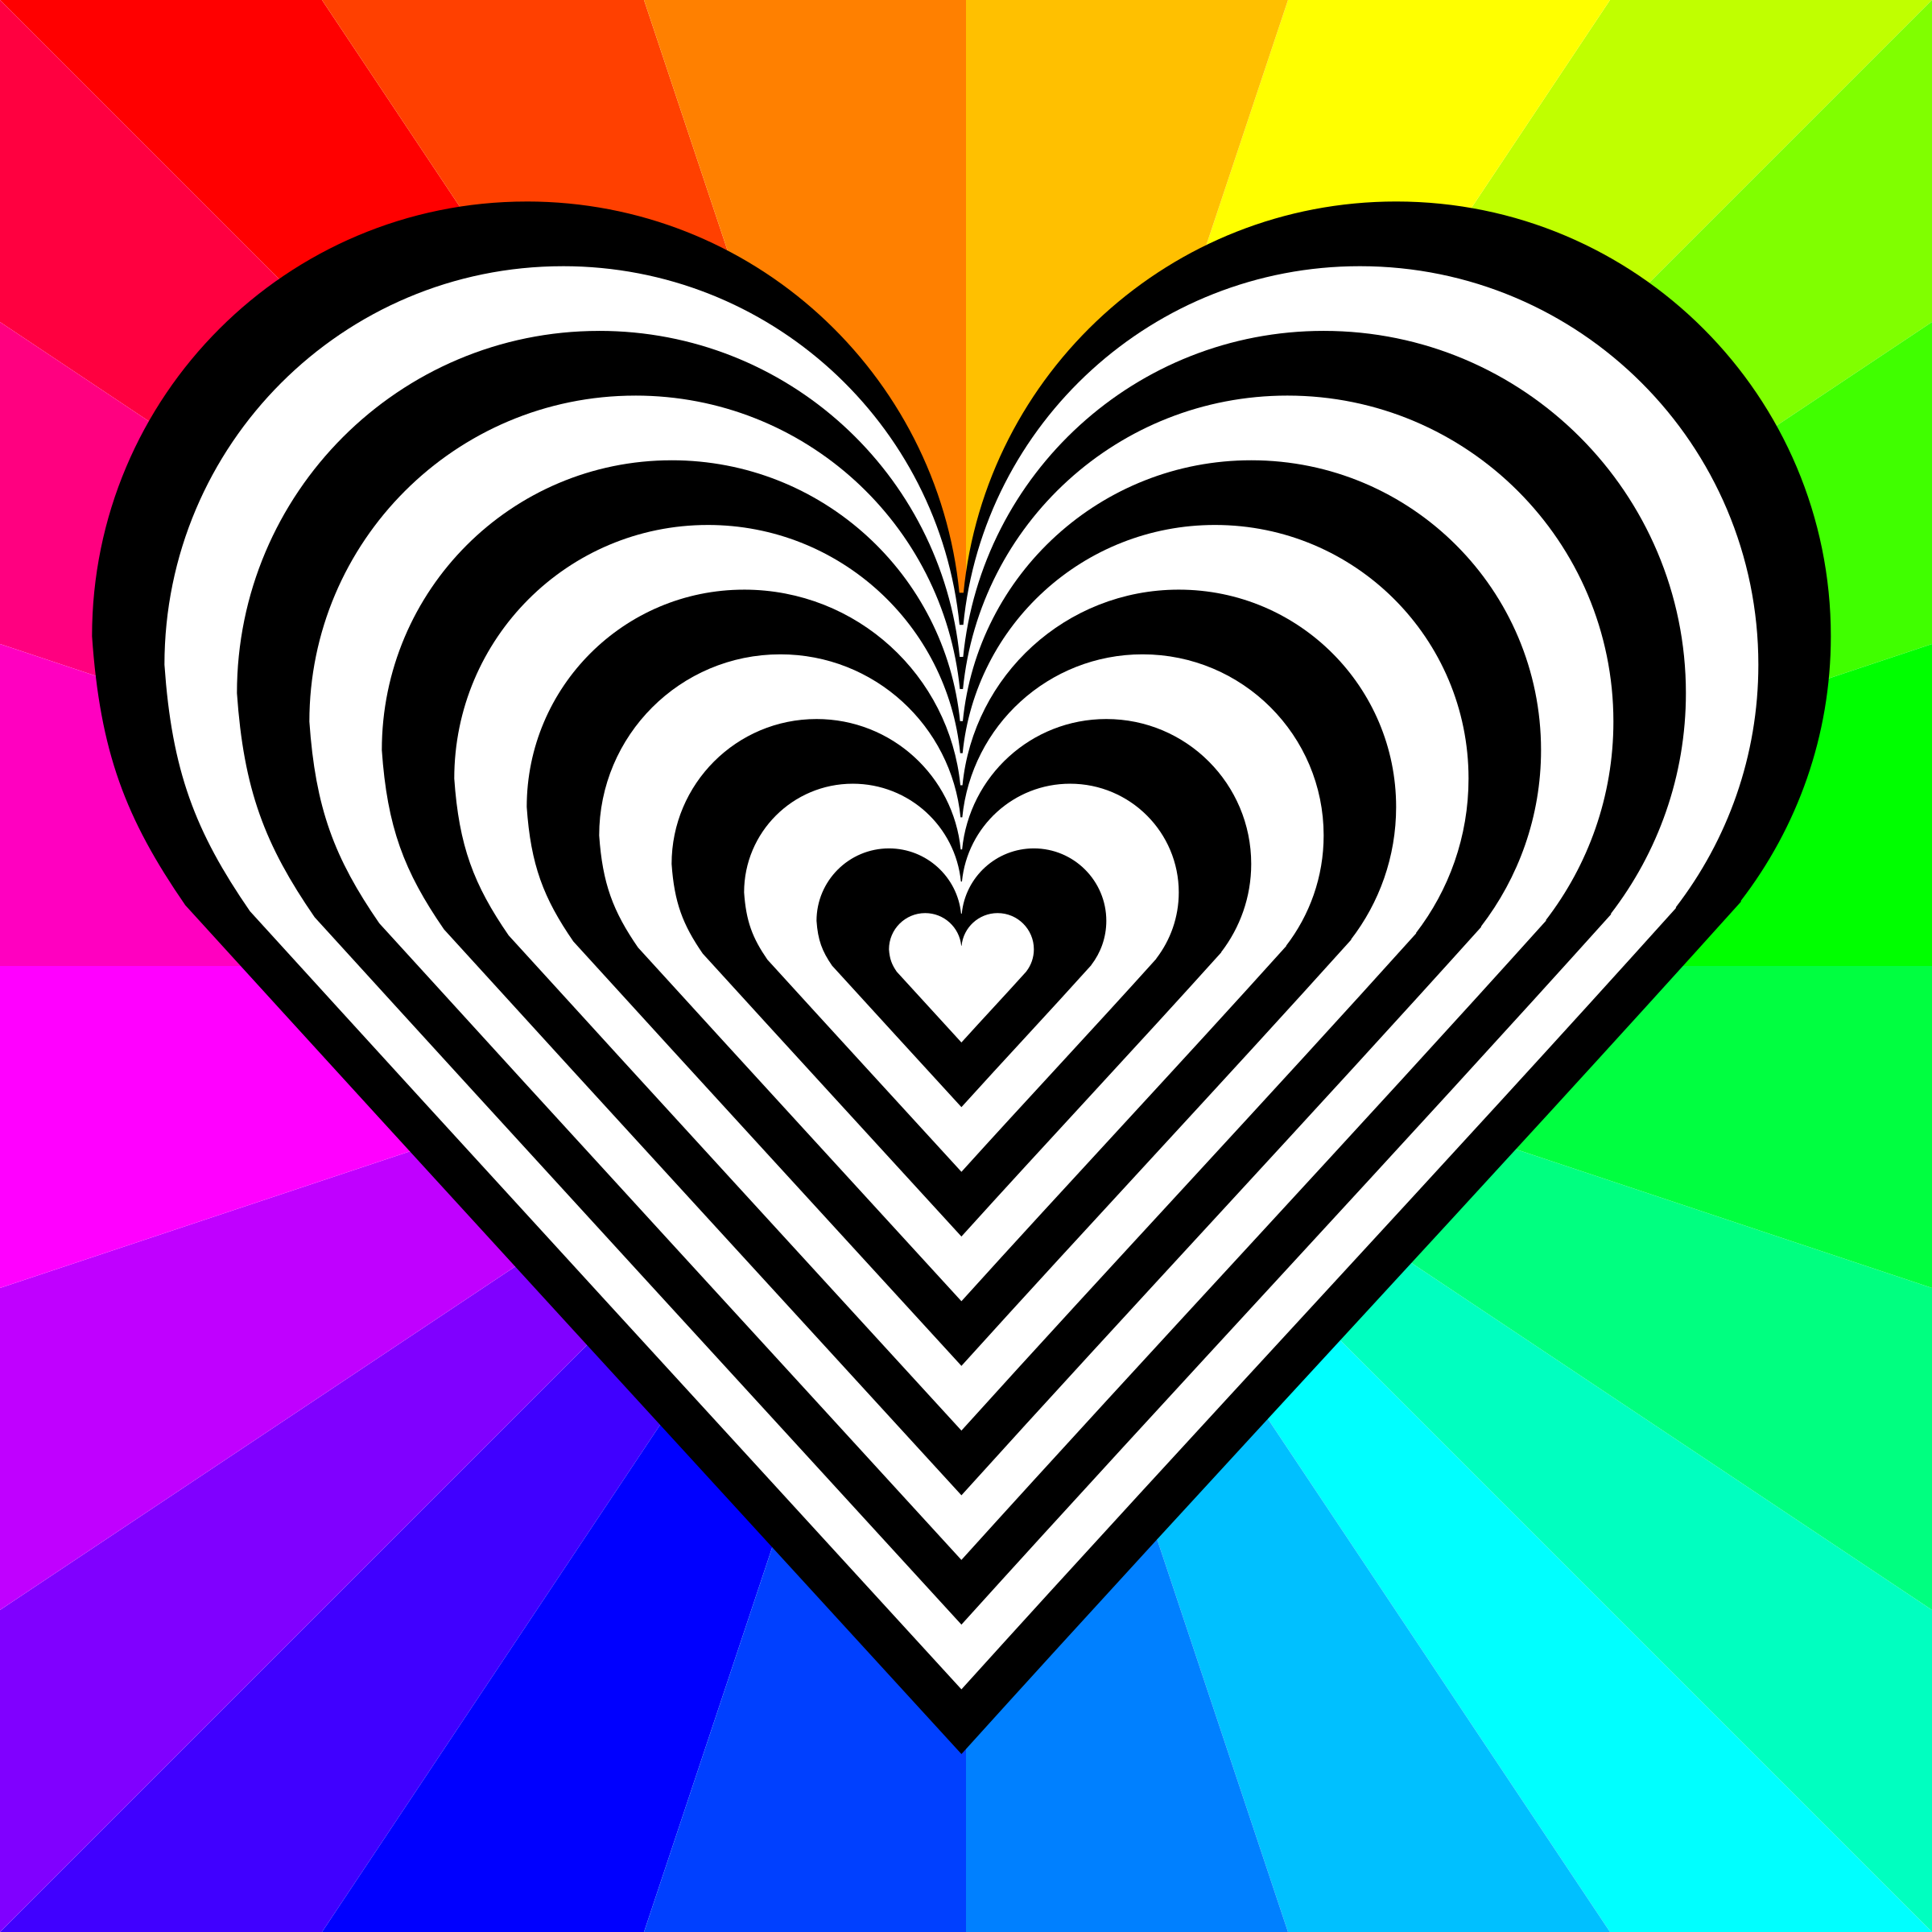 zebra heart 12 stripes by 10binary